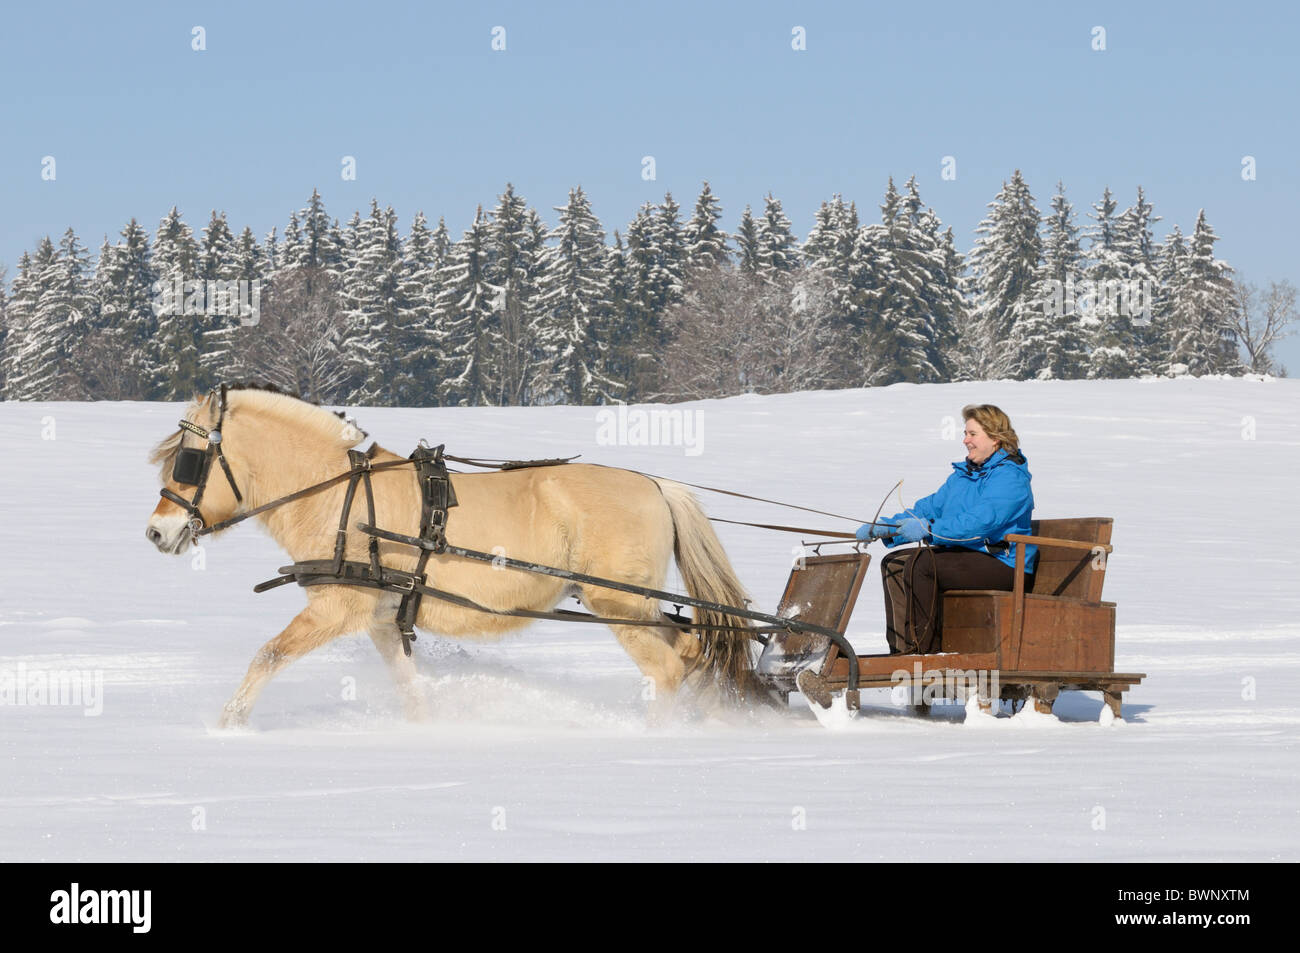 Norwegian horse drawing a sleigh - Stock Image